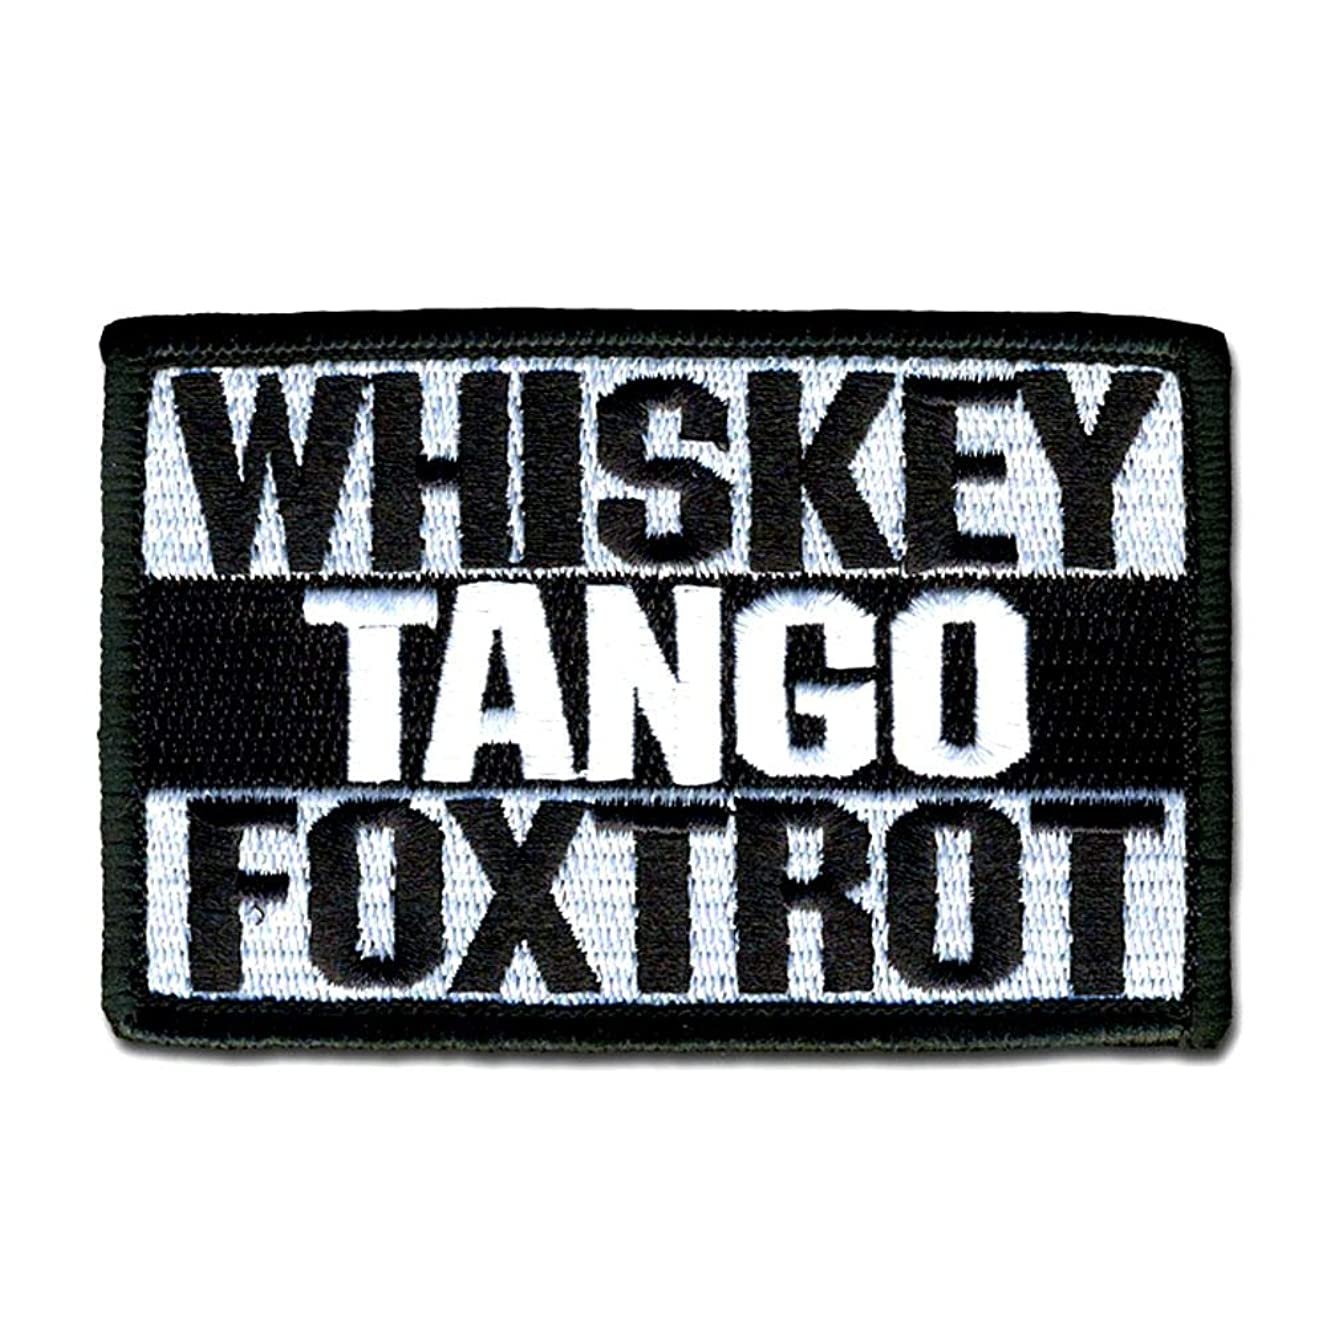 Bastion Tactical Combat Badge Military Hook and Loop Badge Embroidered Morale Patch - Whiskey Tango Foxtrot (Black)